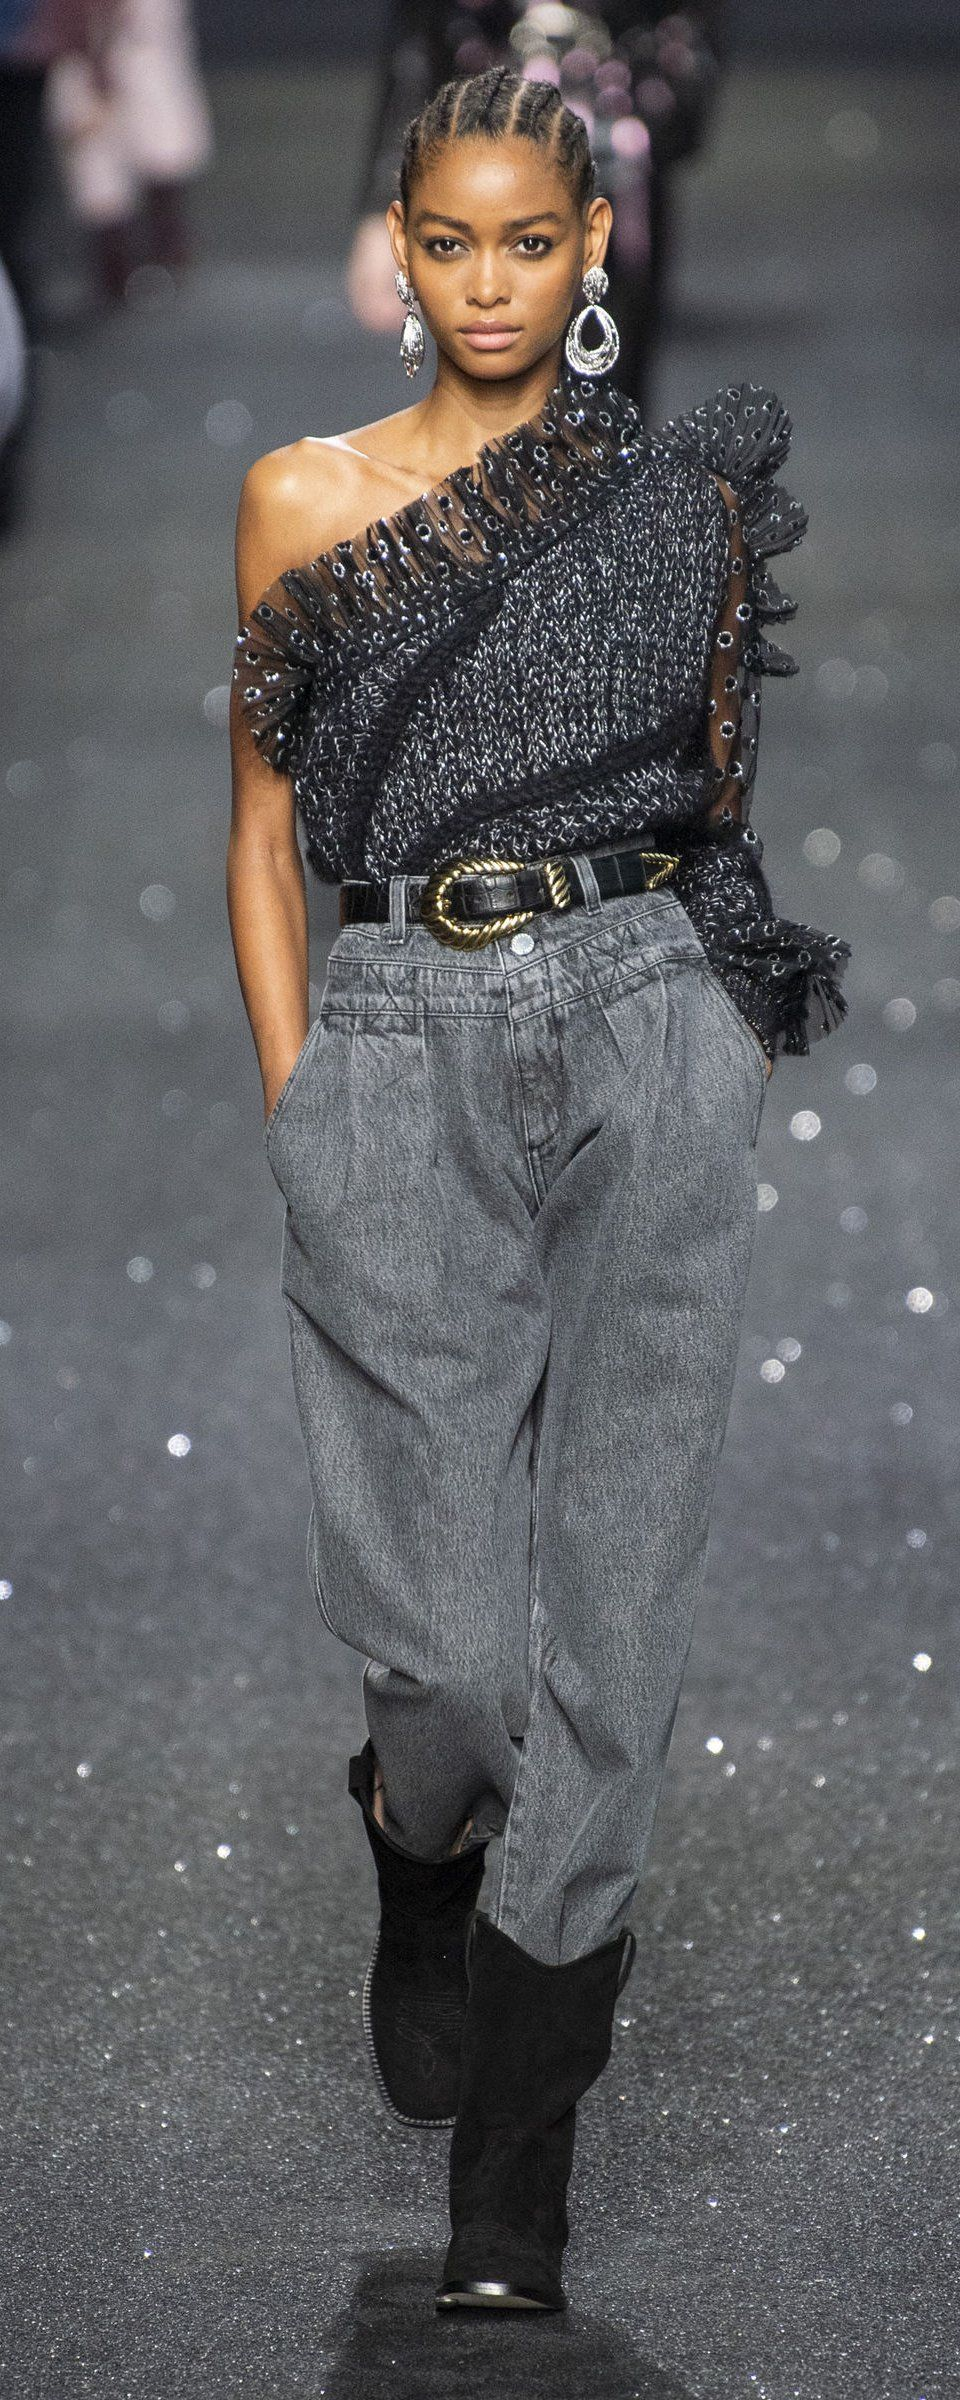 Fall Fashion With Jeans Dress 2020, Ideas, Picture Alberta Ferretti Fall winter 2019 2020   Ready to Wear in 2019